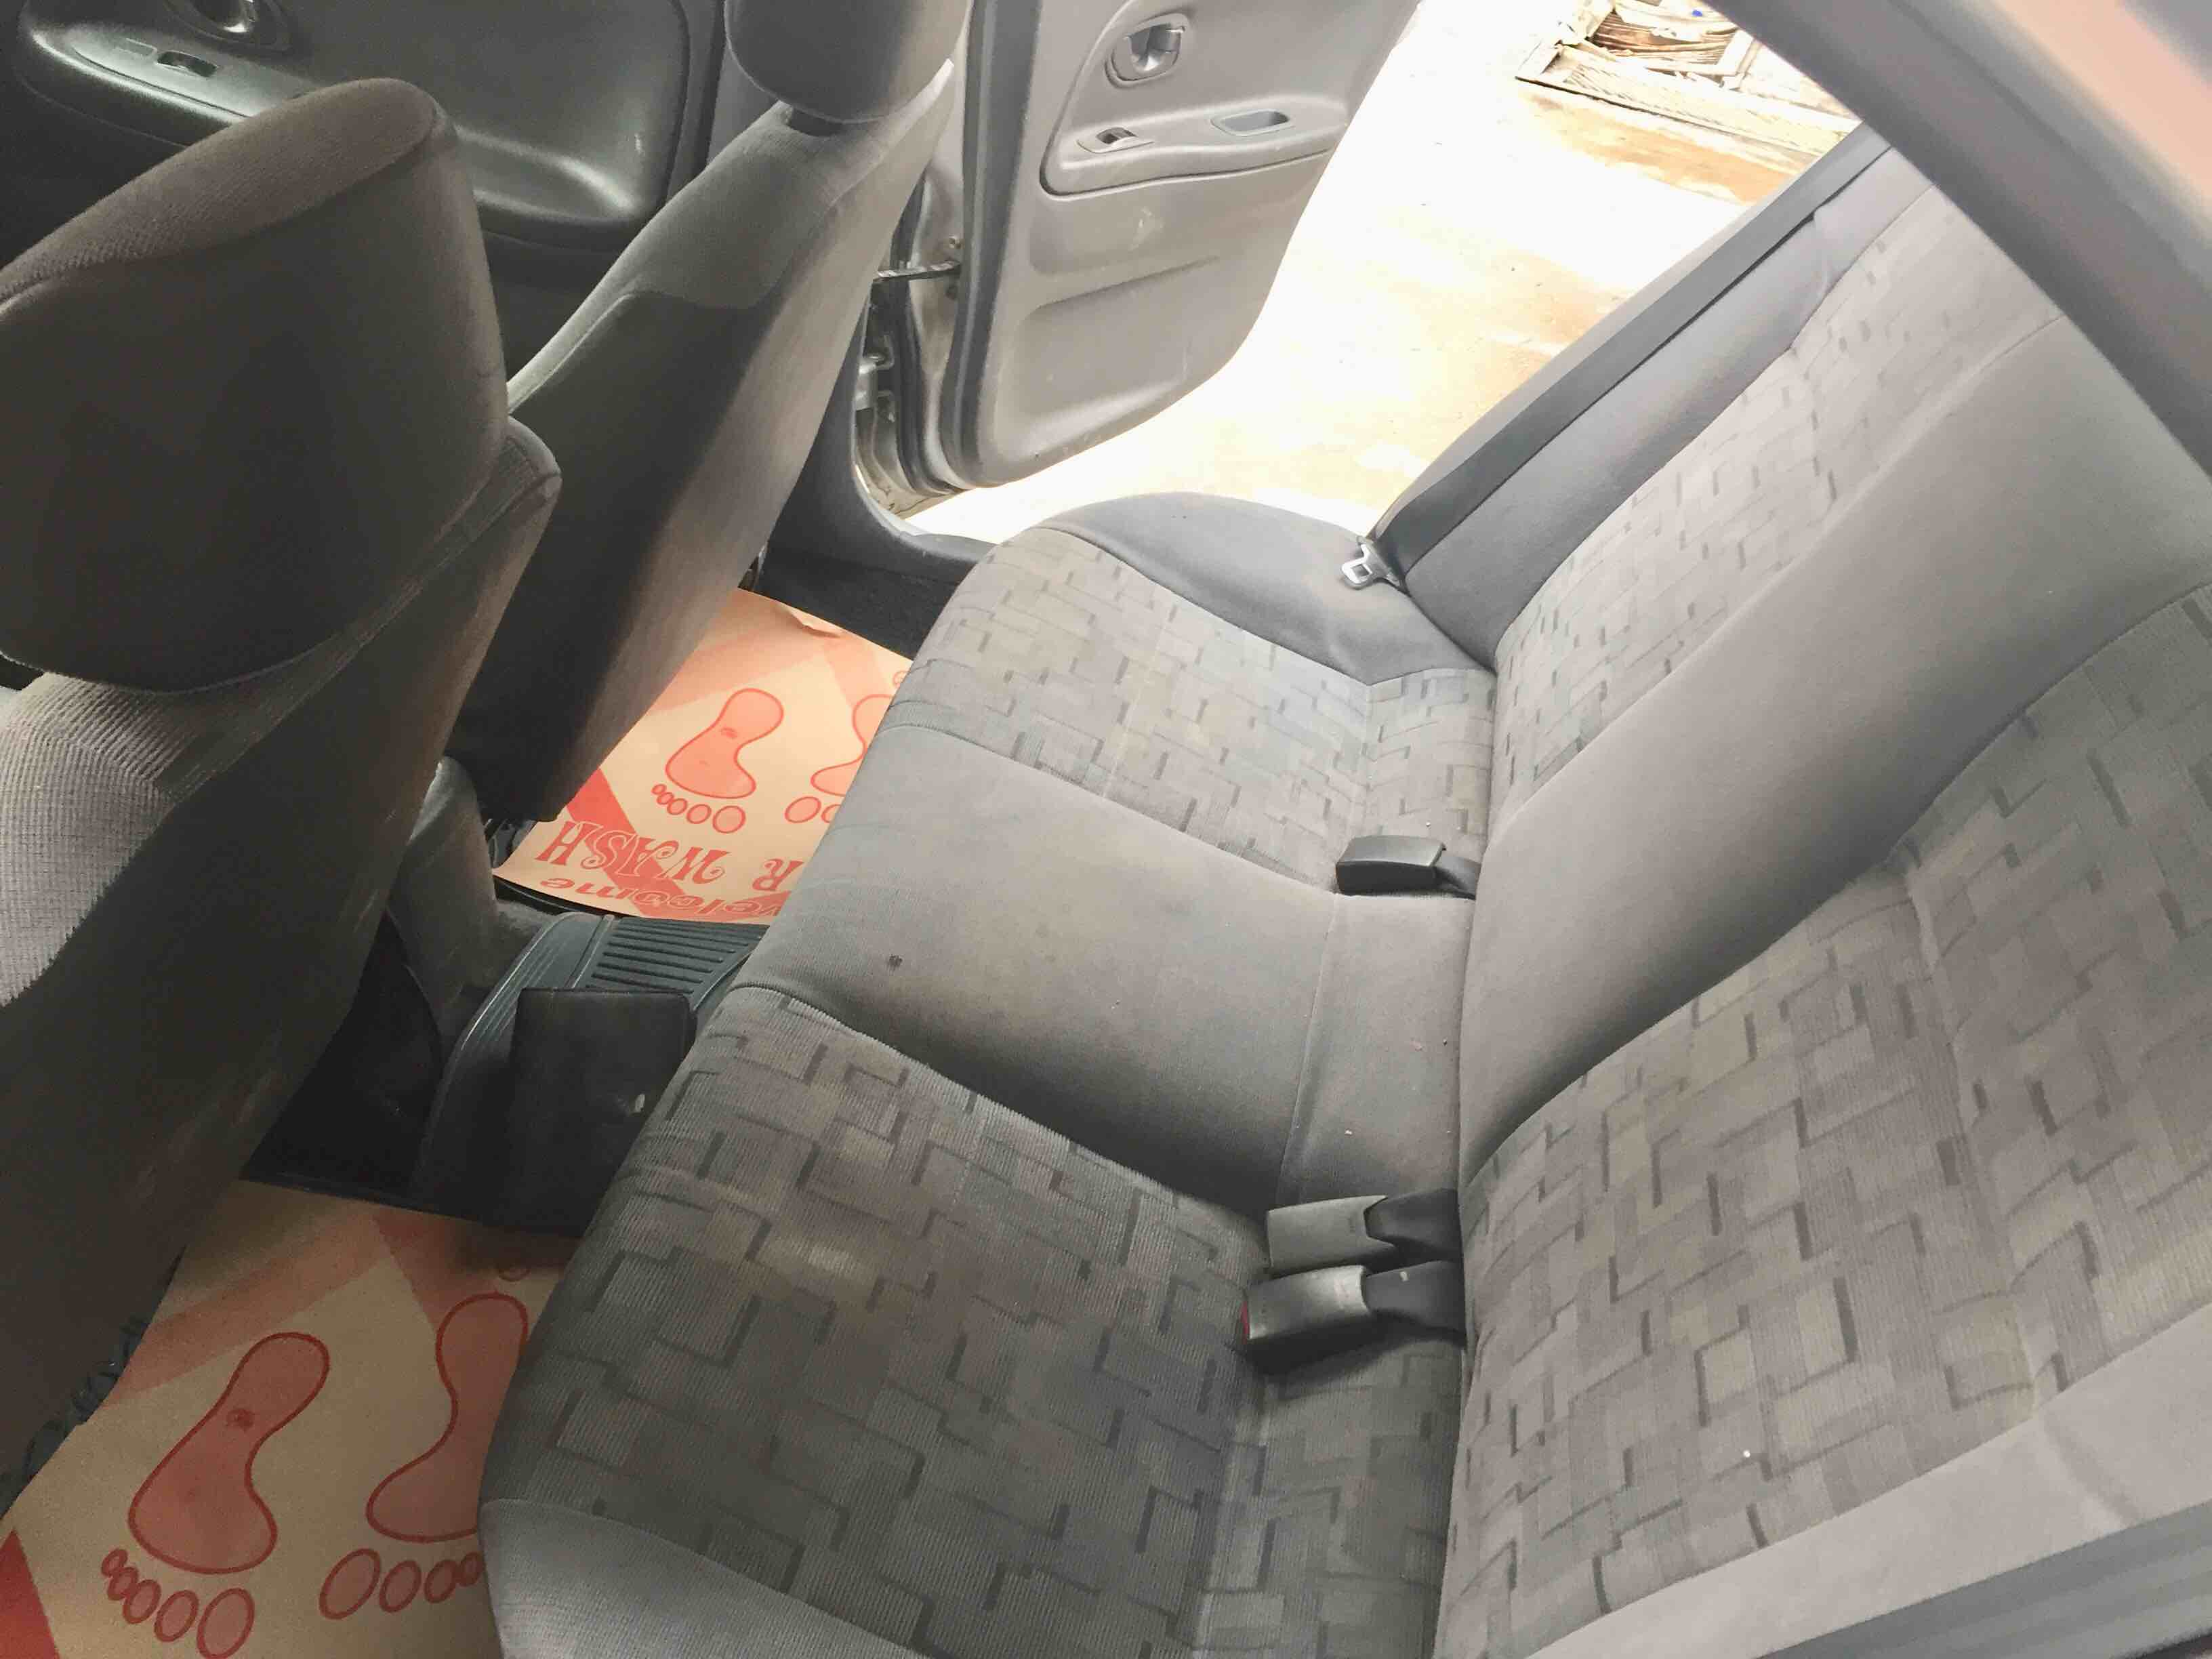 Toyota camry for sale-  ميتشوبيشي لانسر موديل...